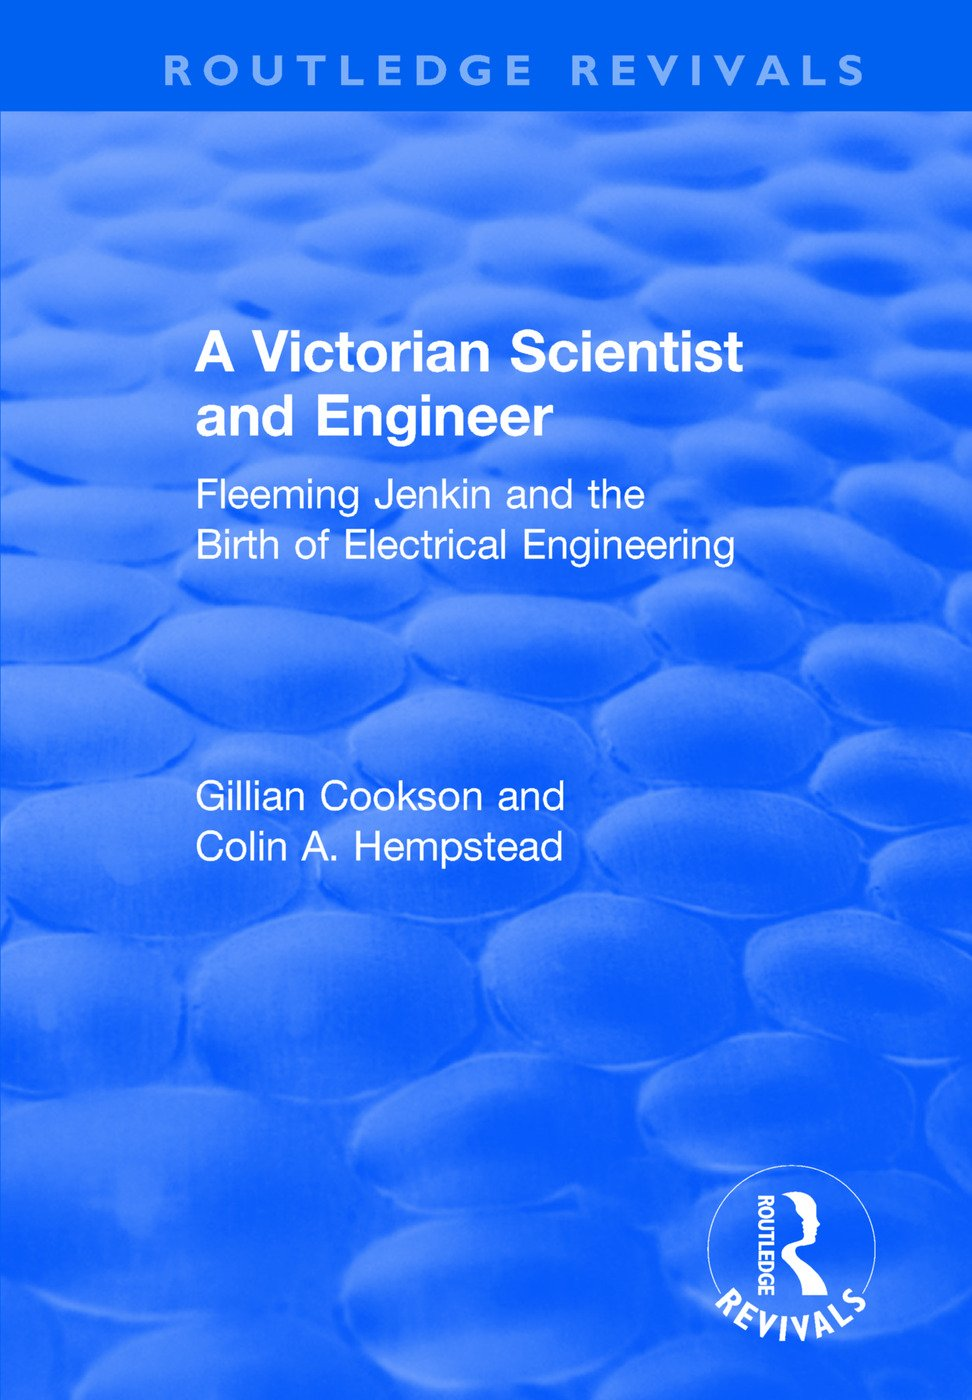 A Victorian Scientist and Engineer: Fleeming Jenkin and the Birth of Electrical Engineering book cover